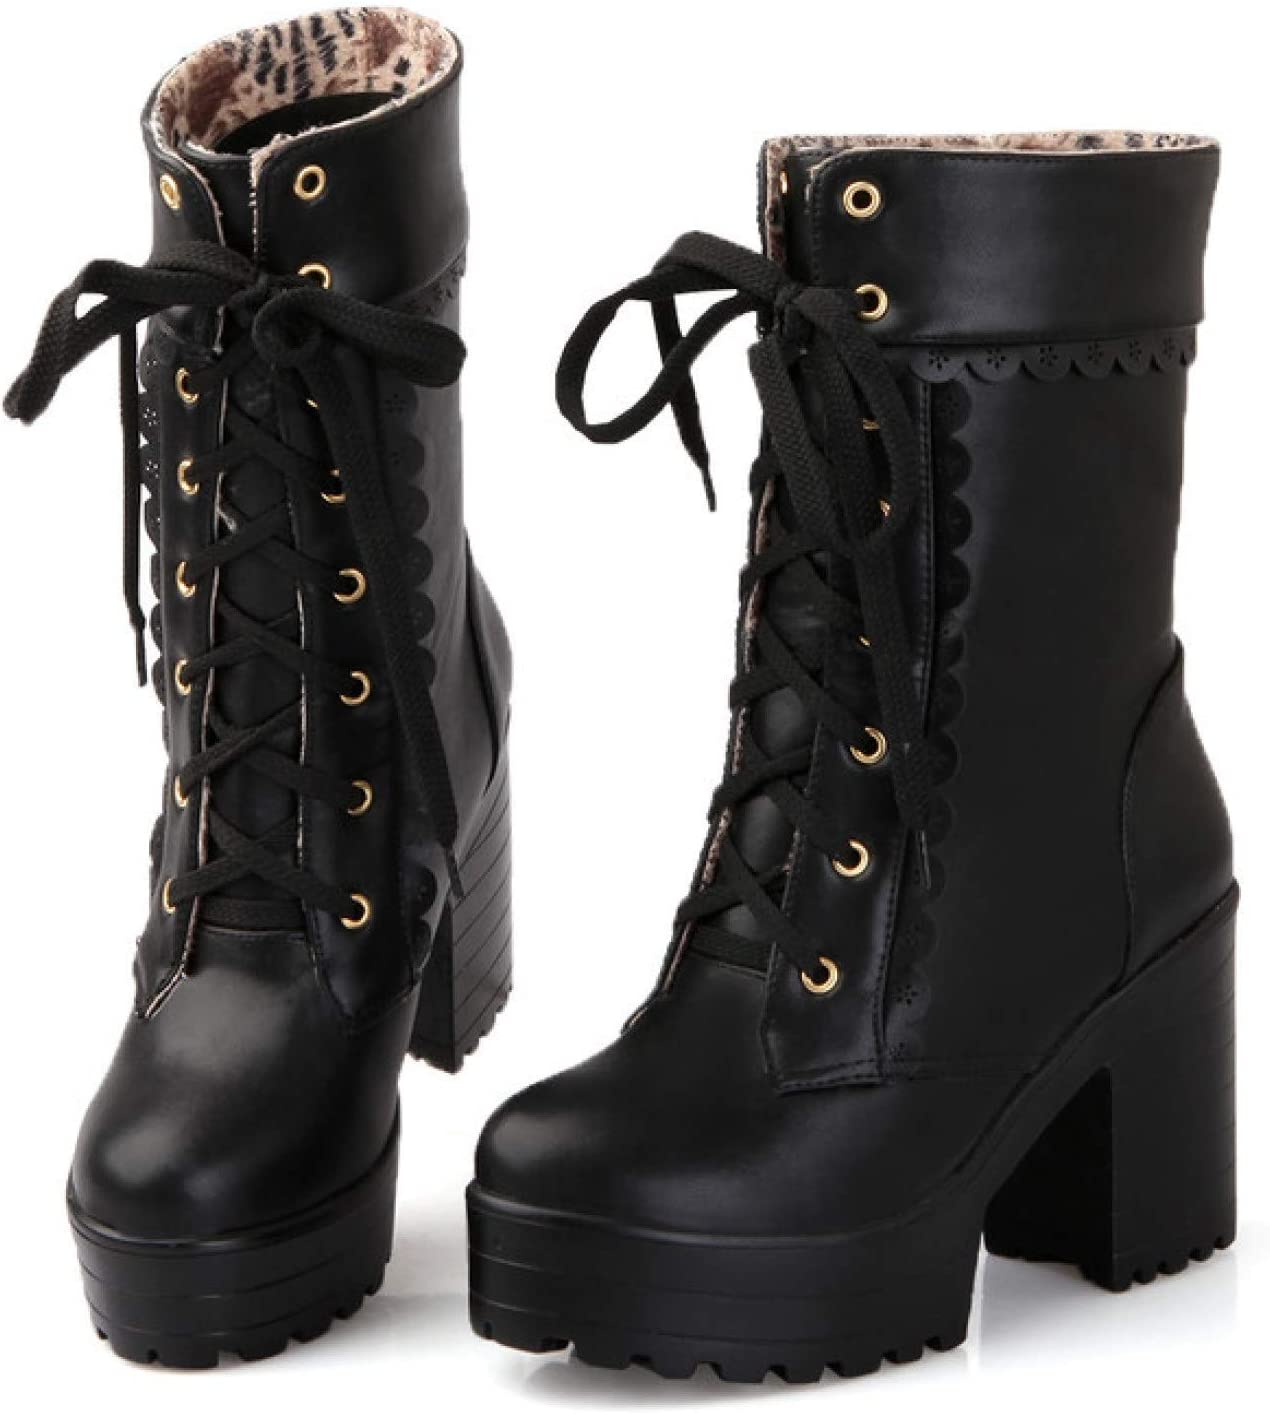 FMTZZY High Heels for Women Womens Lolita Platform Combat Boots Girls Lace Up Chunky Block High Heel Faux Leather Mid Calf Boots (Color : Black, Size : 4.5)